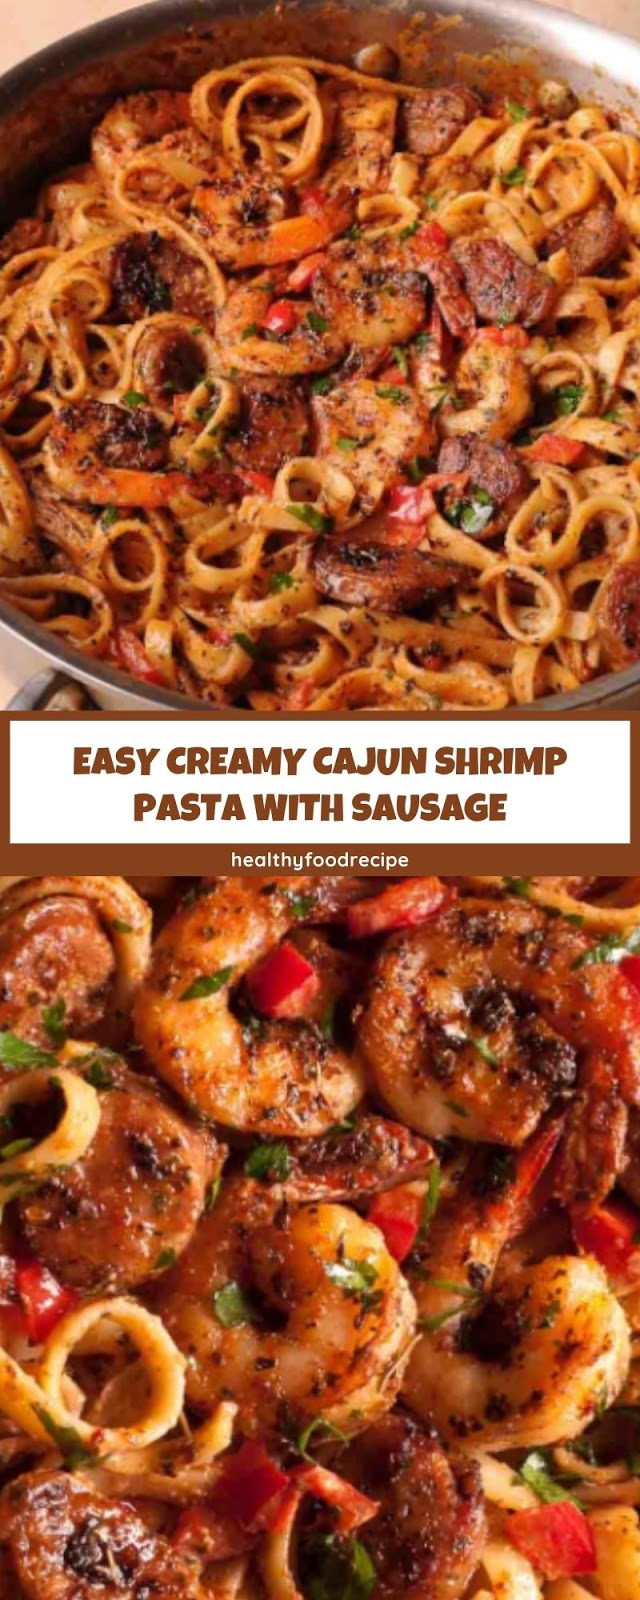 EASY CREAMY CAJUN SHRIMP PASTA WITH SAUSAGE